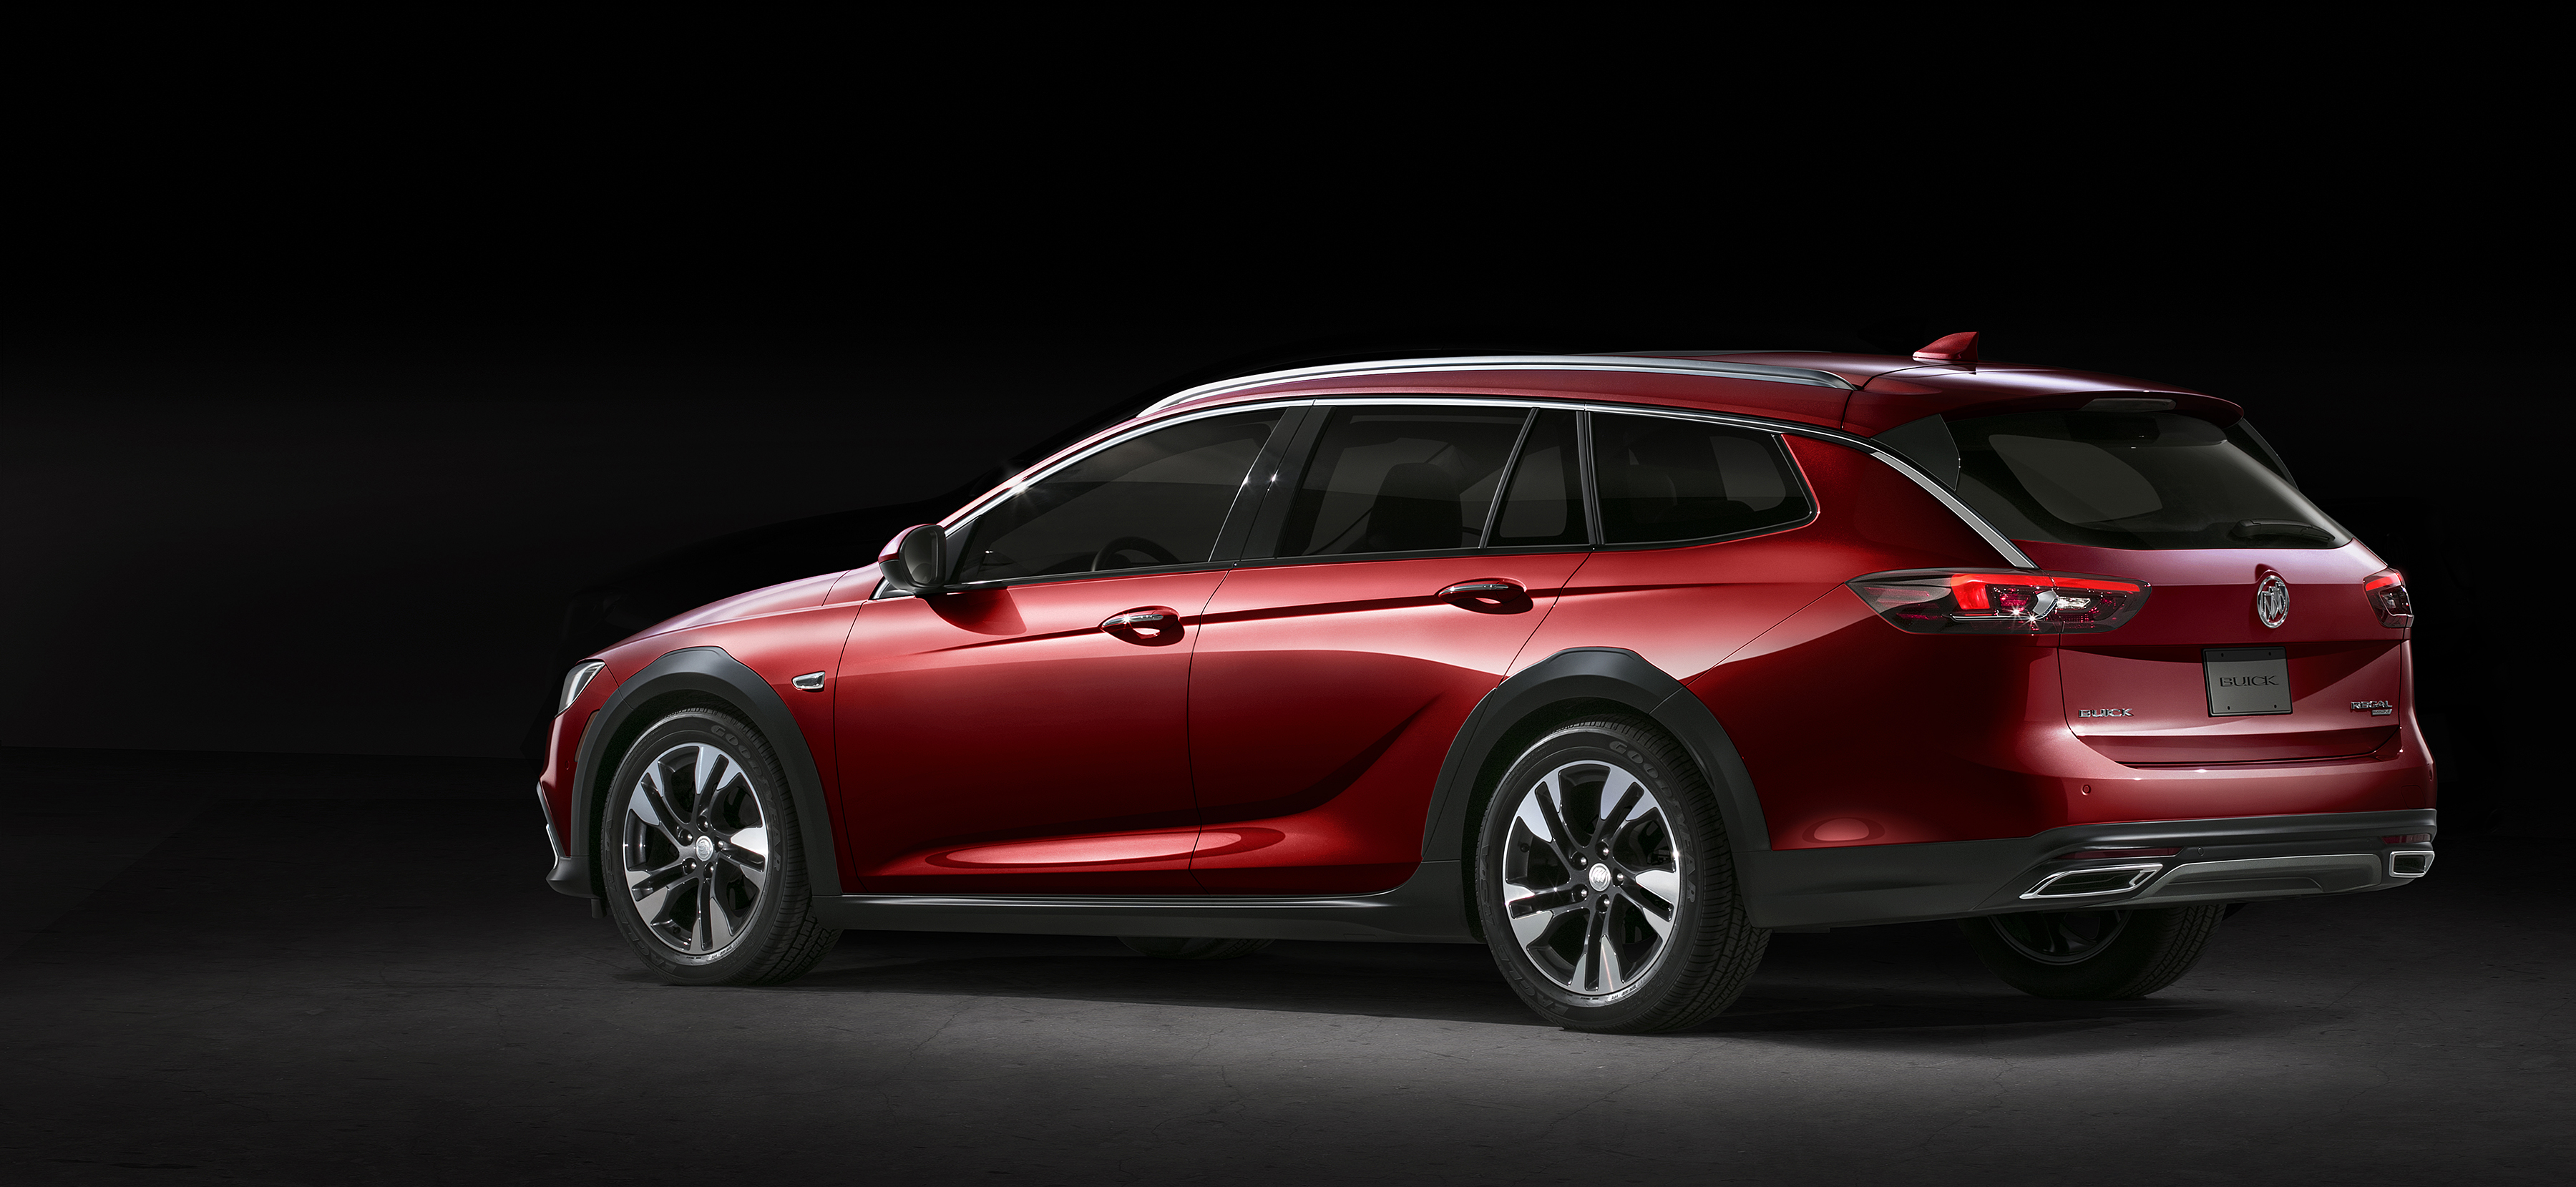 2018 Buick Regal Tourx Is America S Station Wagon With Suv